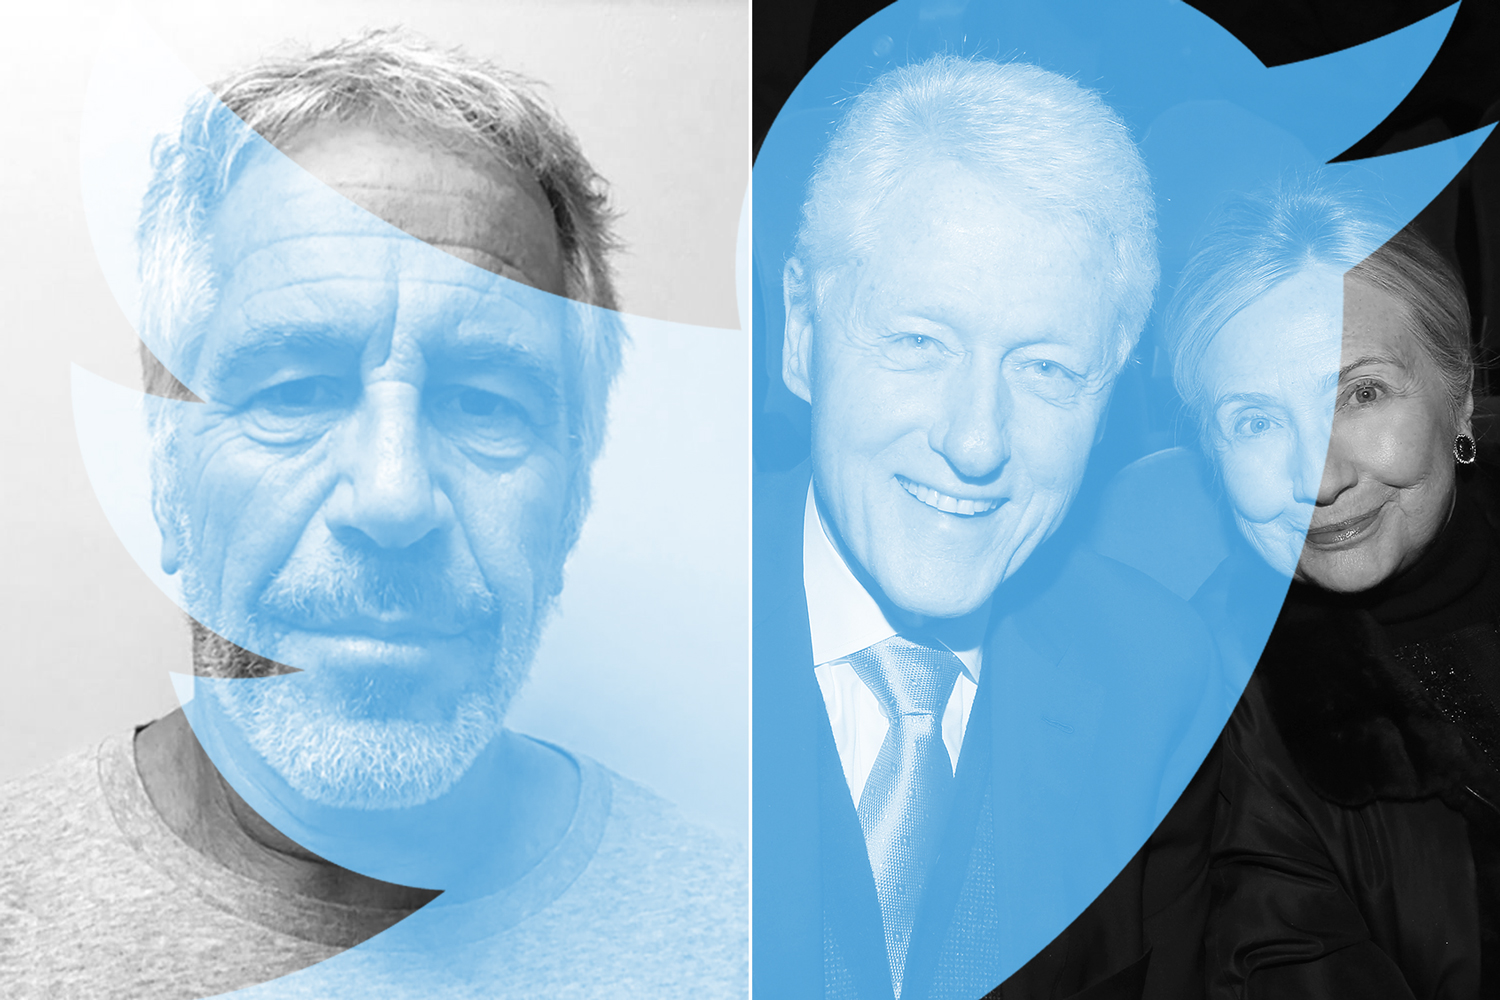 A Jeffrey Epstein-Clinton Conspiracy Theory Was Trending — And That's a Problem